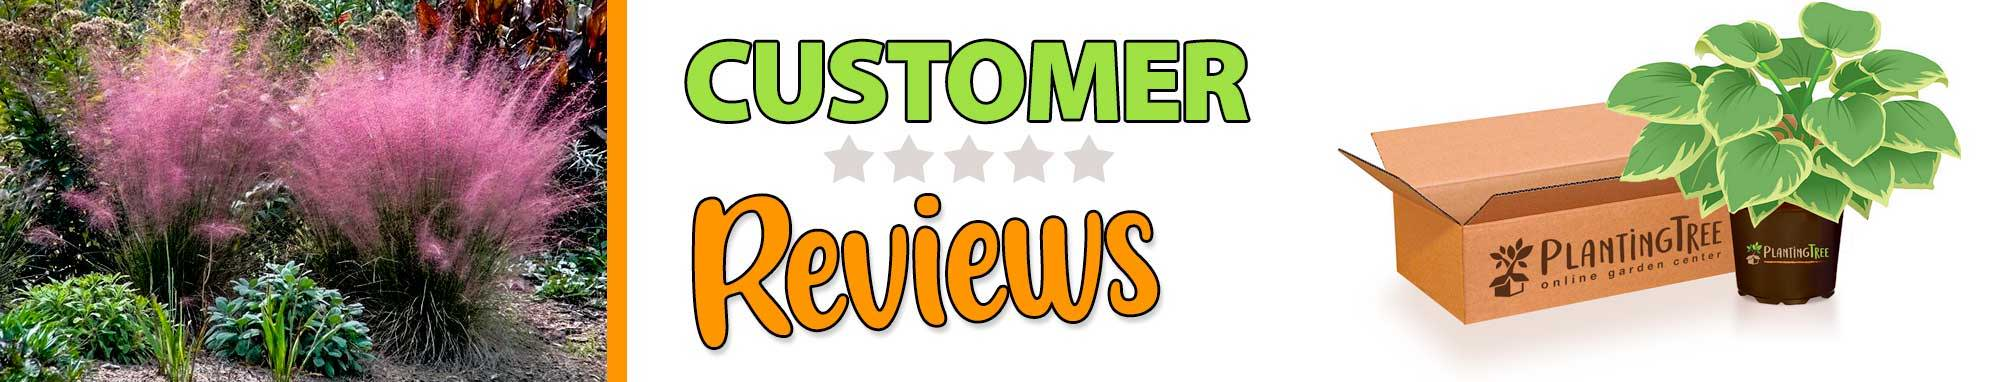 plantingtree customer reviews